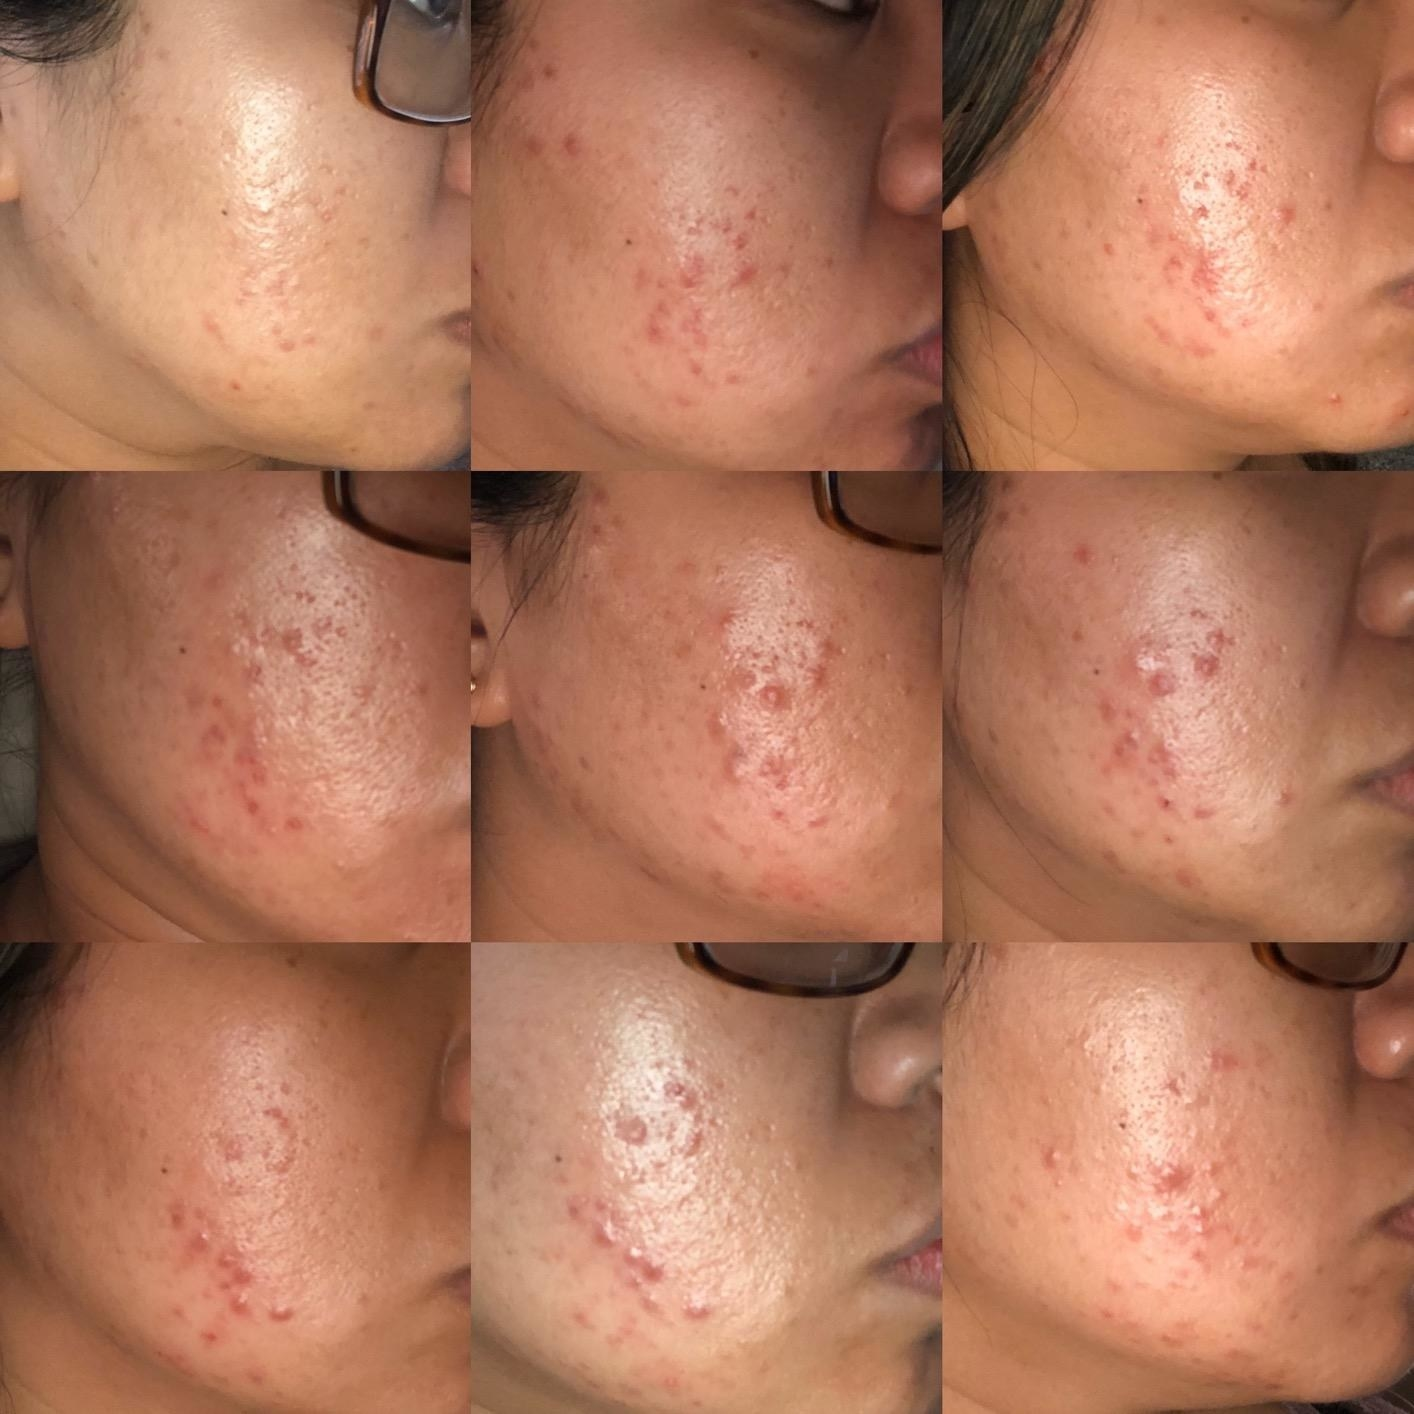 Reviewer progression photos of their acne slowly fading over time thanks to the gel